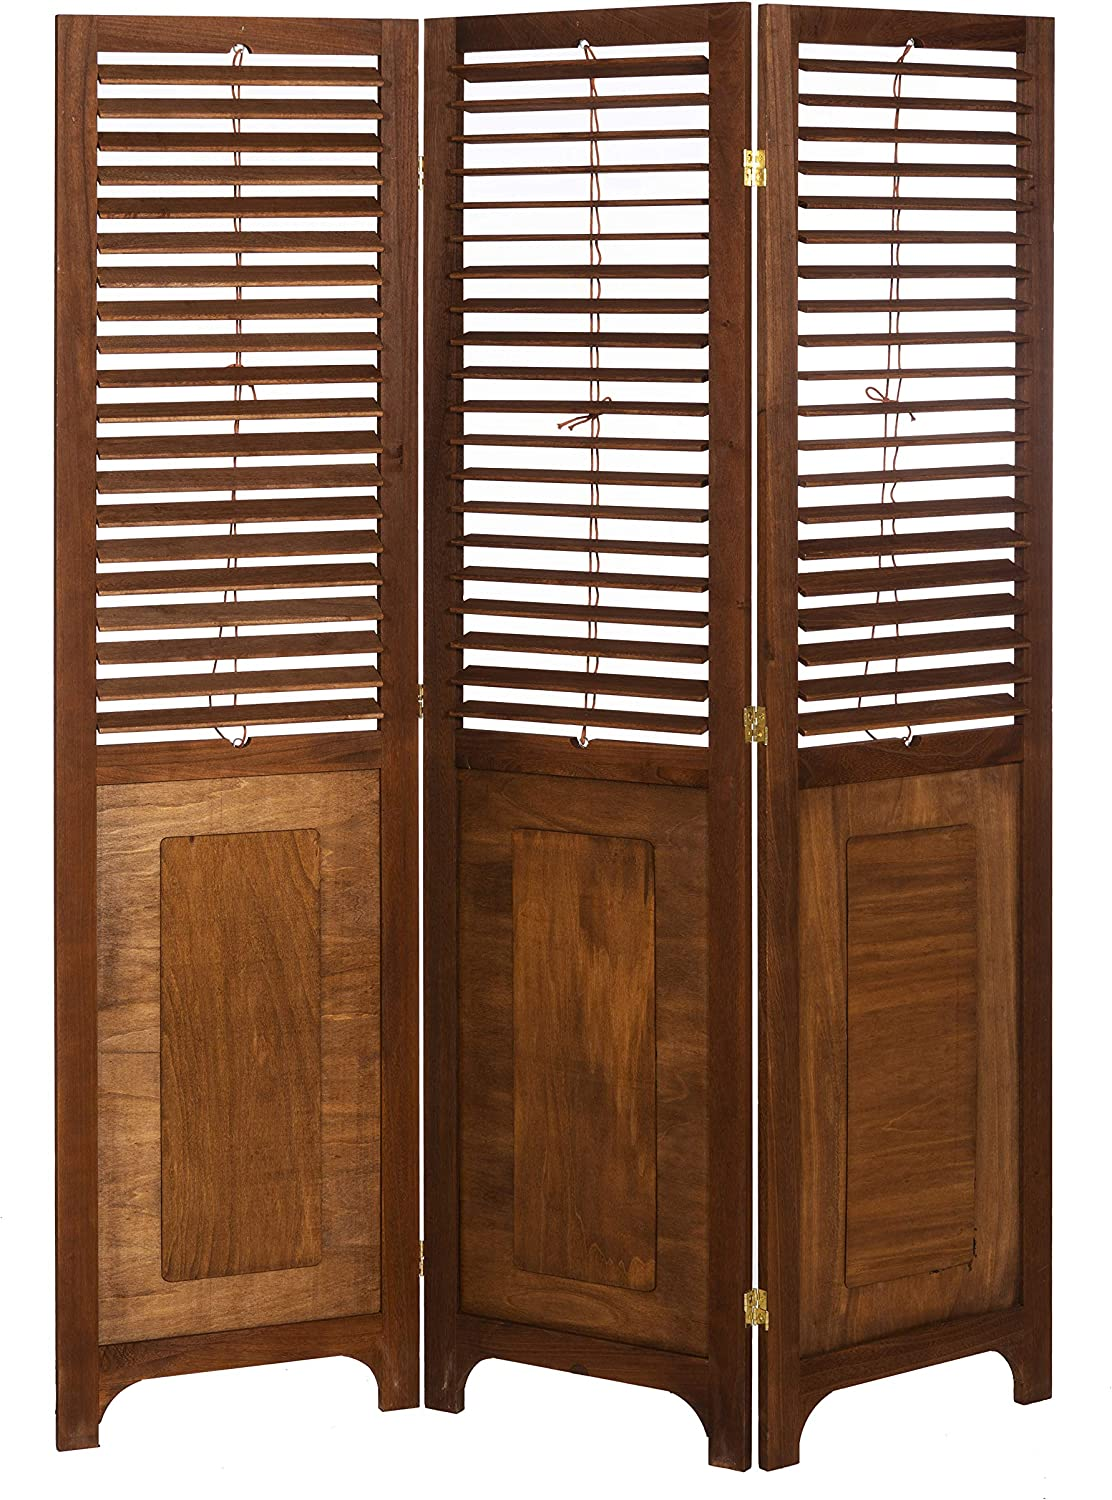 3 PANEL SOLID WOOD SCREEN ROOM DIVIDER WITH ADJUSTABLE SHUTTERS ON TOP HALF WALNUT BROWN COLOR BY LEGACY DECOR